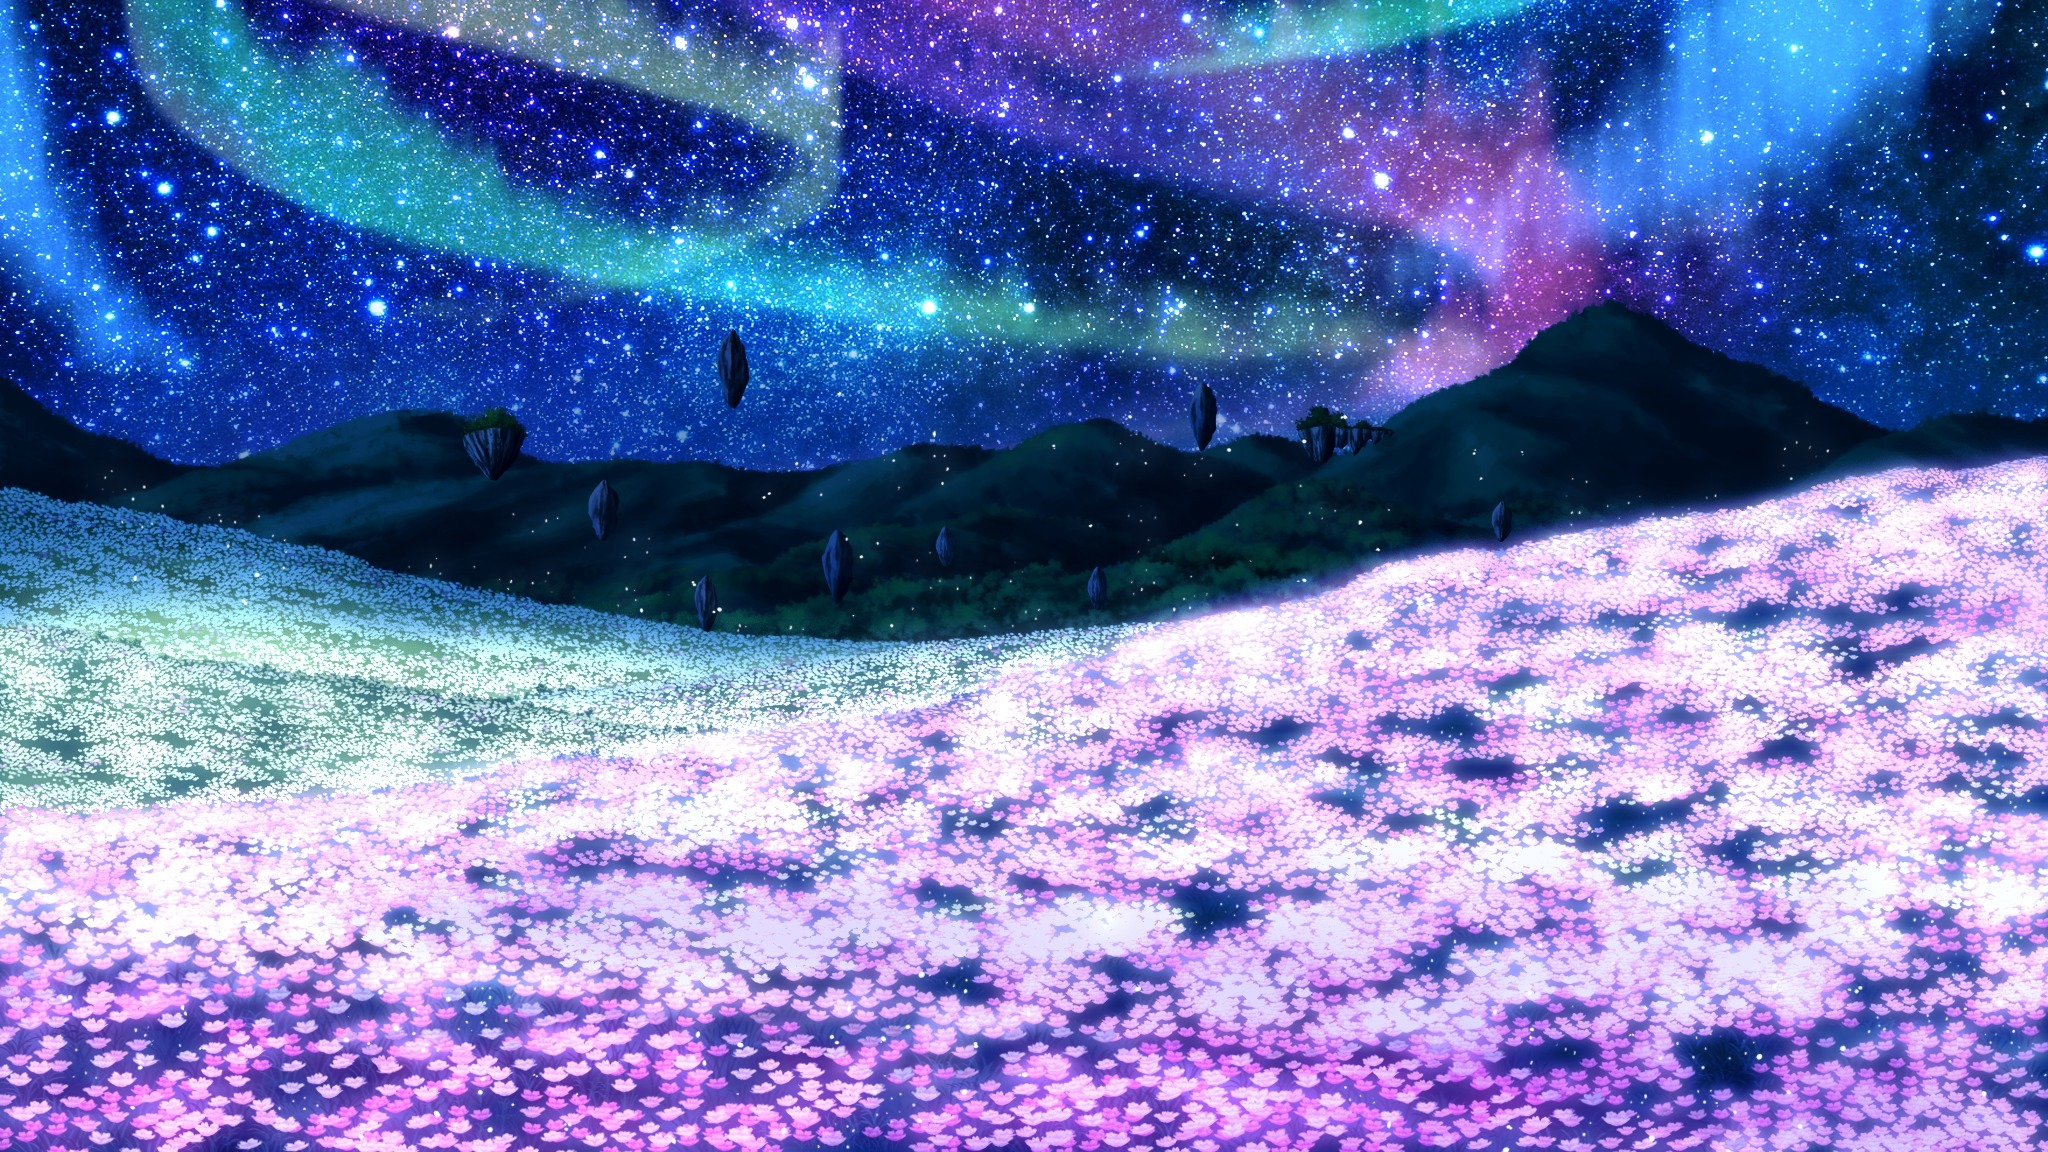 55453_anime_scenery_stars_by_excahm-dbn6